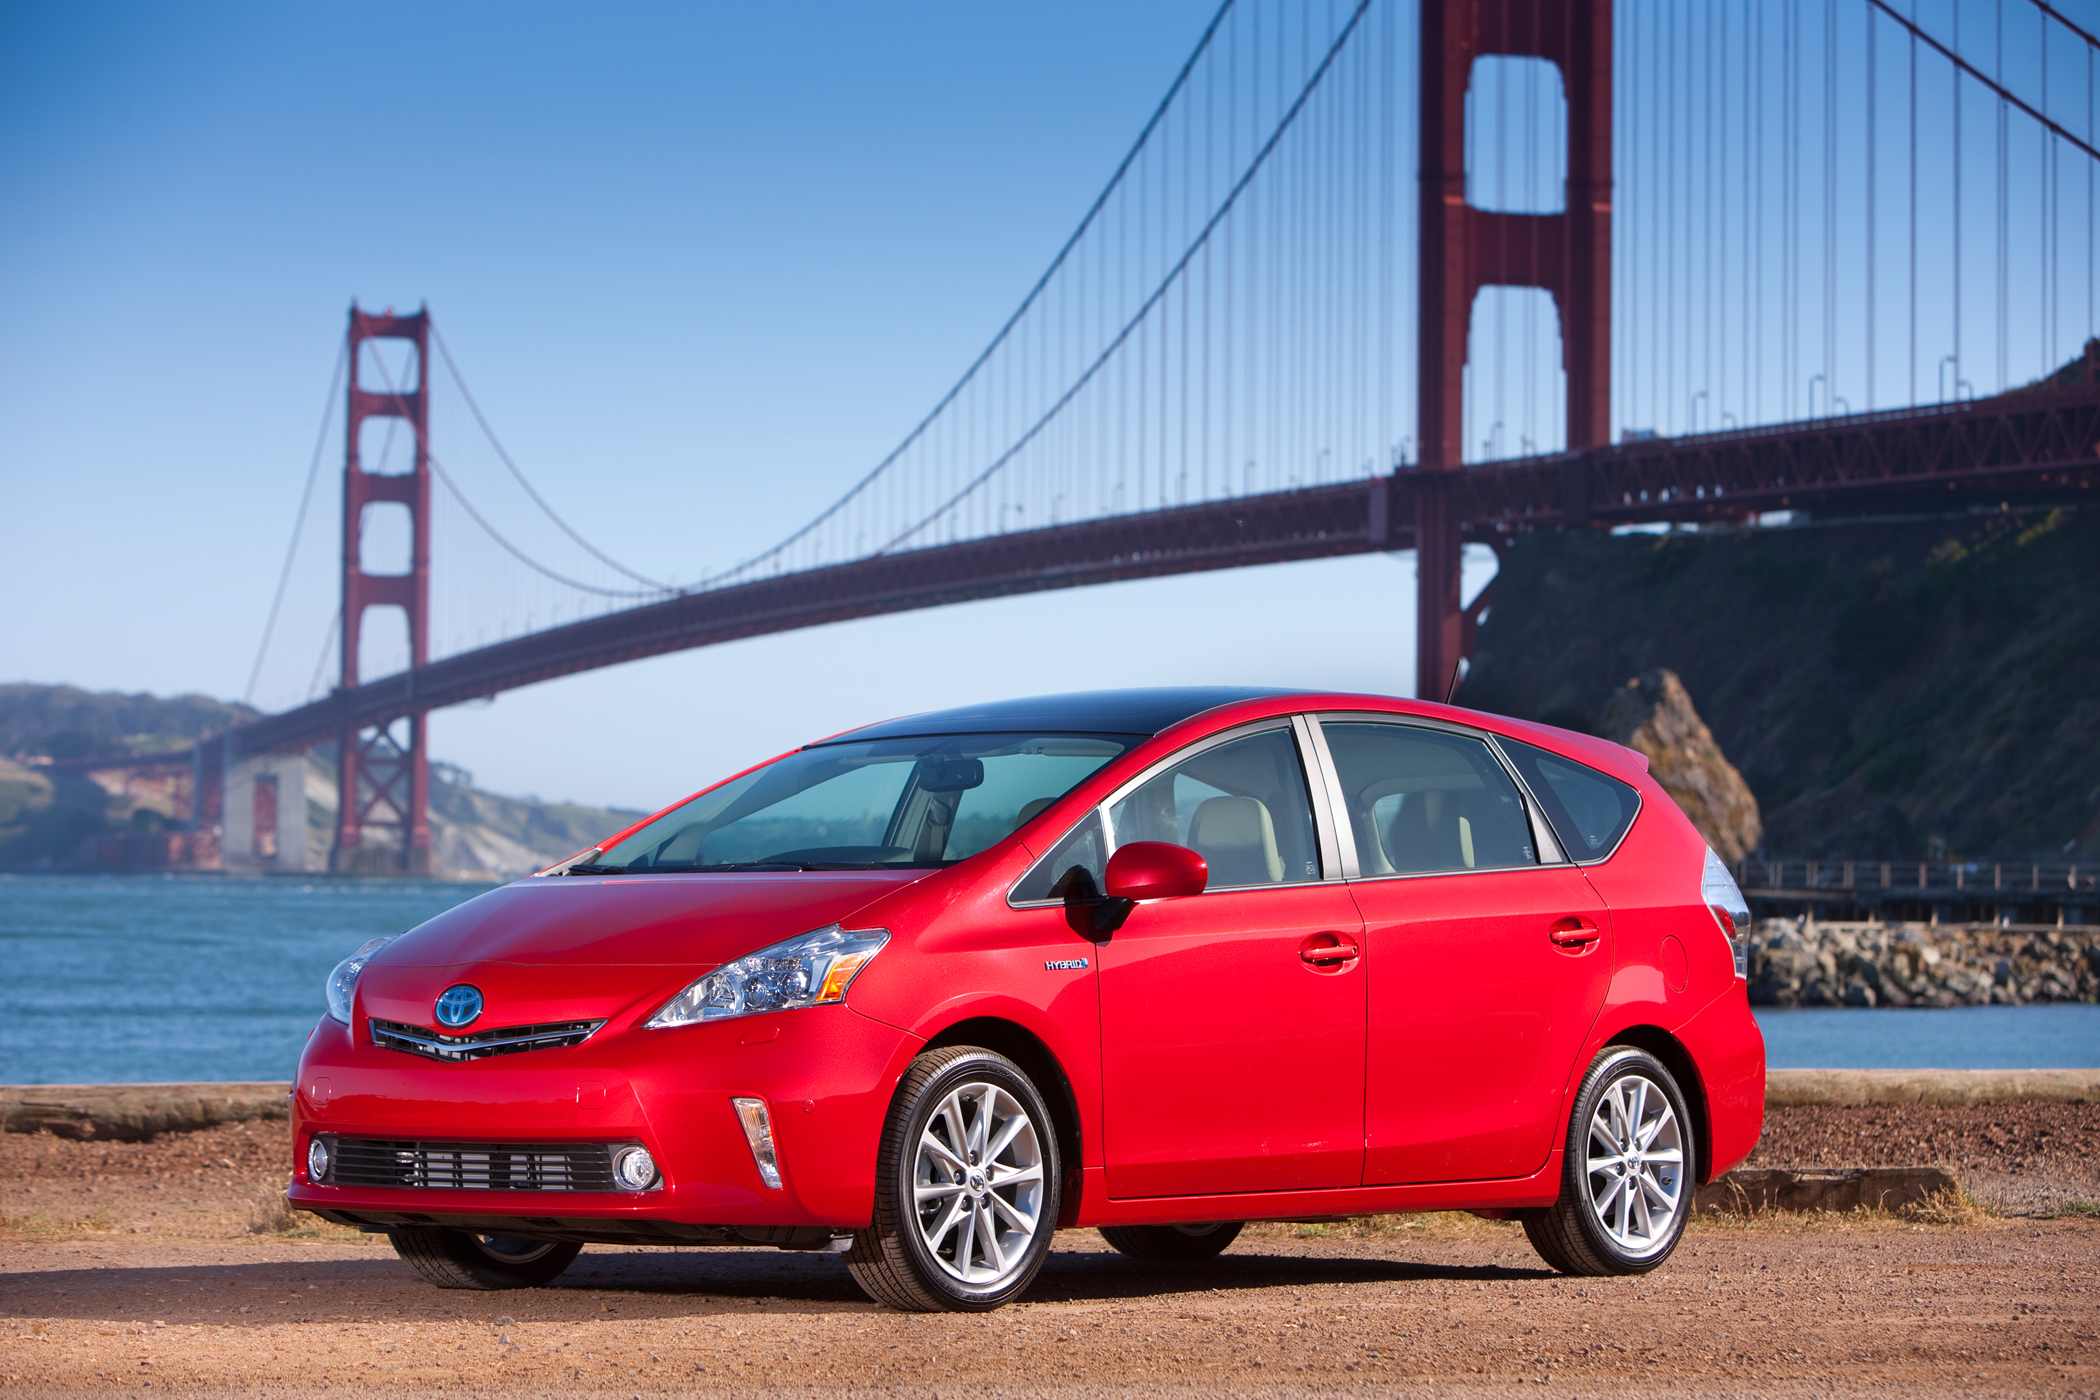 Manufacturer photo: The newest entrant in a growing Toyota Prius family of hybrid vehicles, the 2012 Prius v delivers a blend of versatility and fuel efficiency in a comfortable package